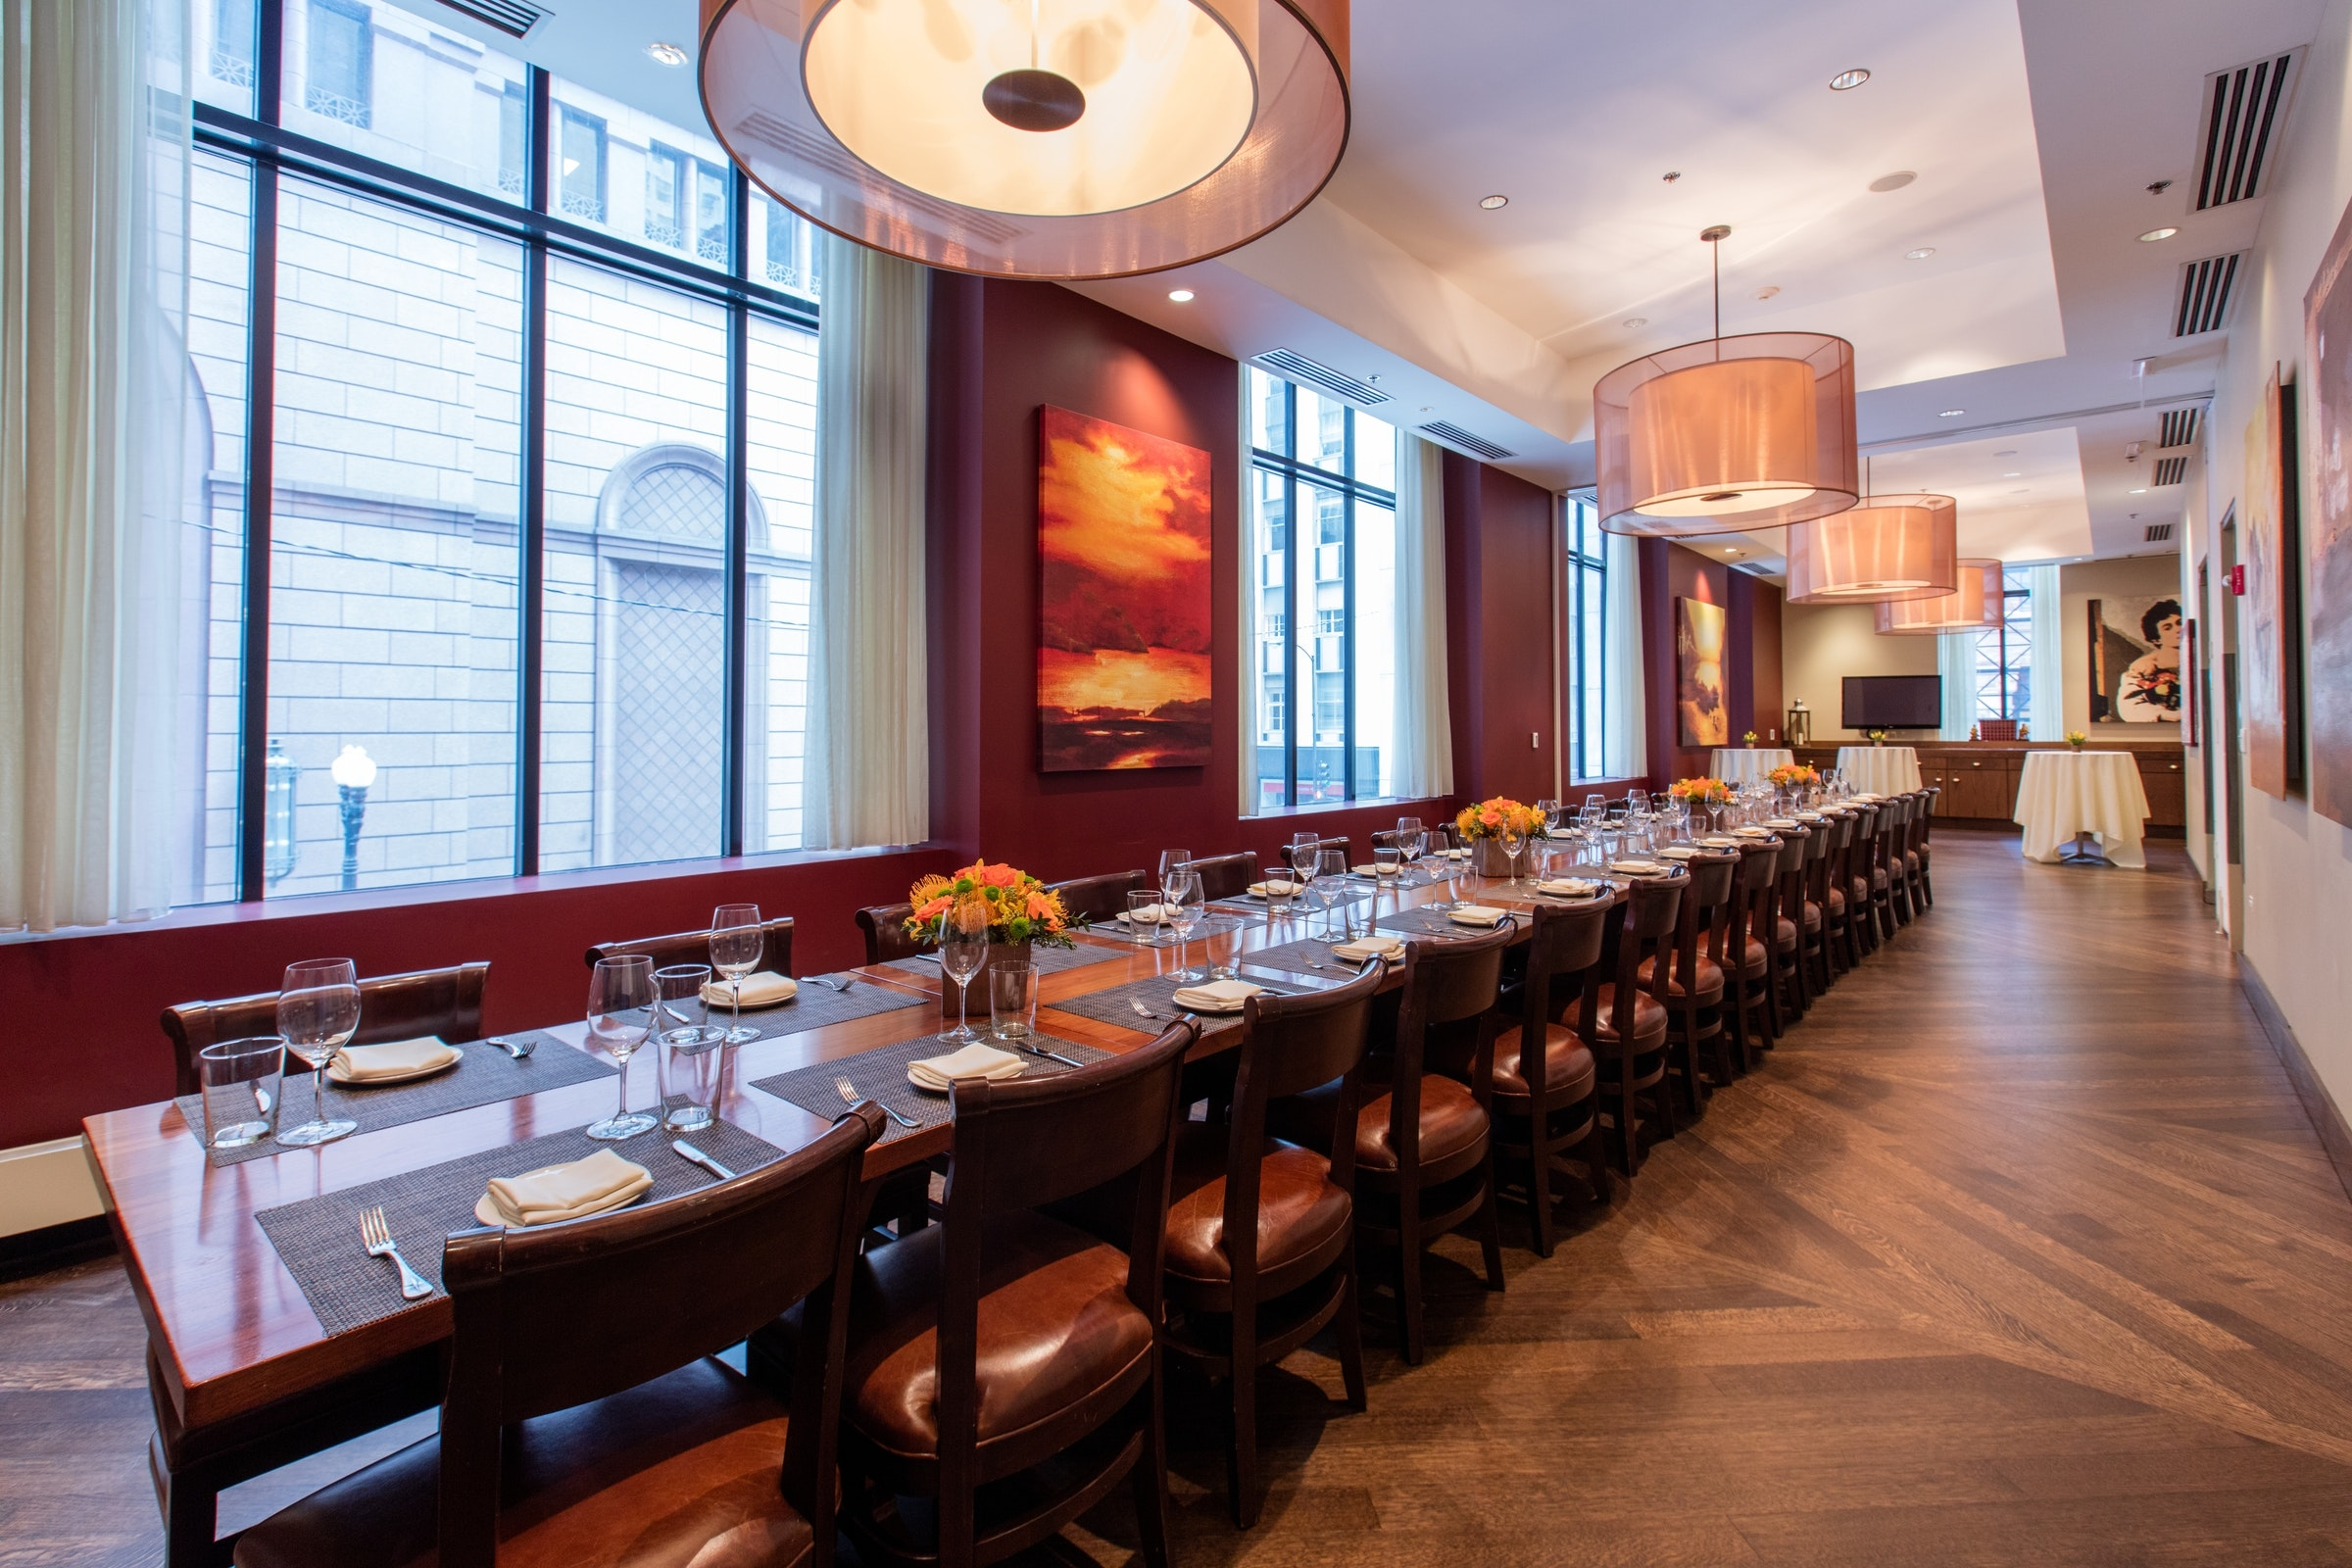 Our Large Private Dining Room Can Accommodate Up To 60 Guests For A Seated  Dinner,